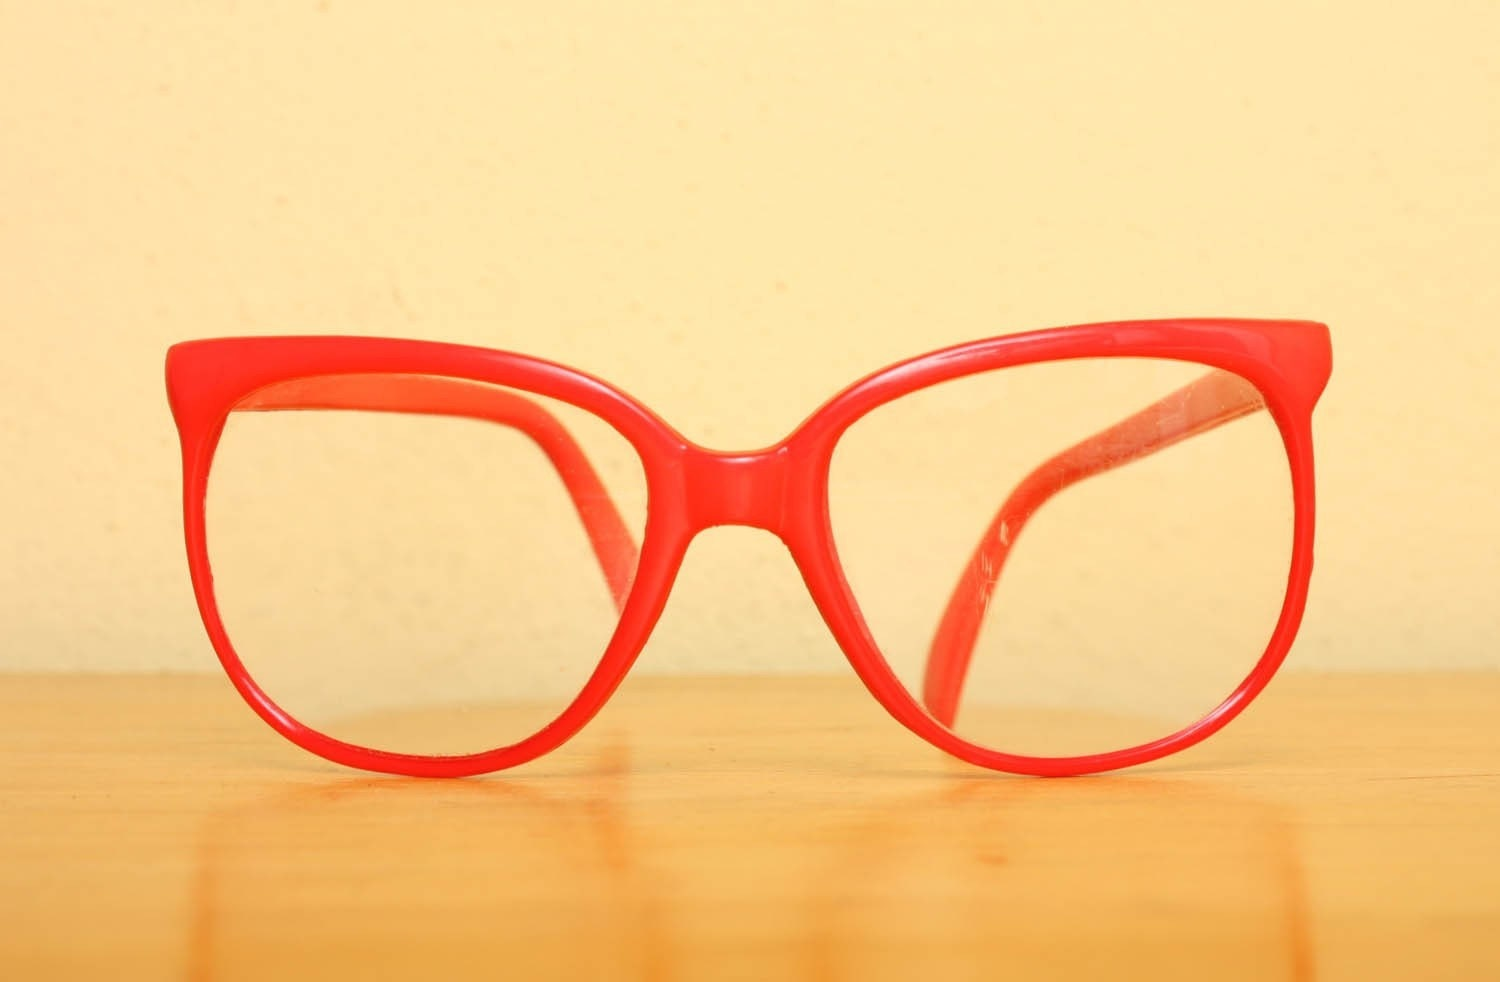 Vintage 1980s Oversized Plastic Glasses in Bright Pinkish Coral Plastic